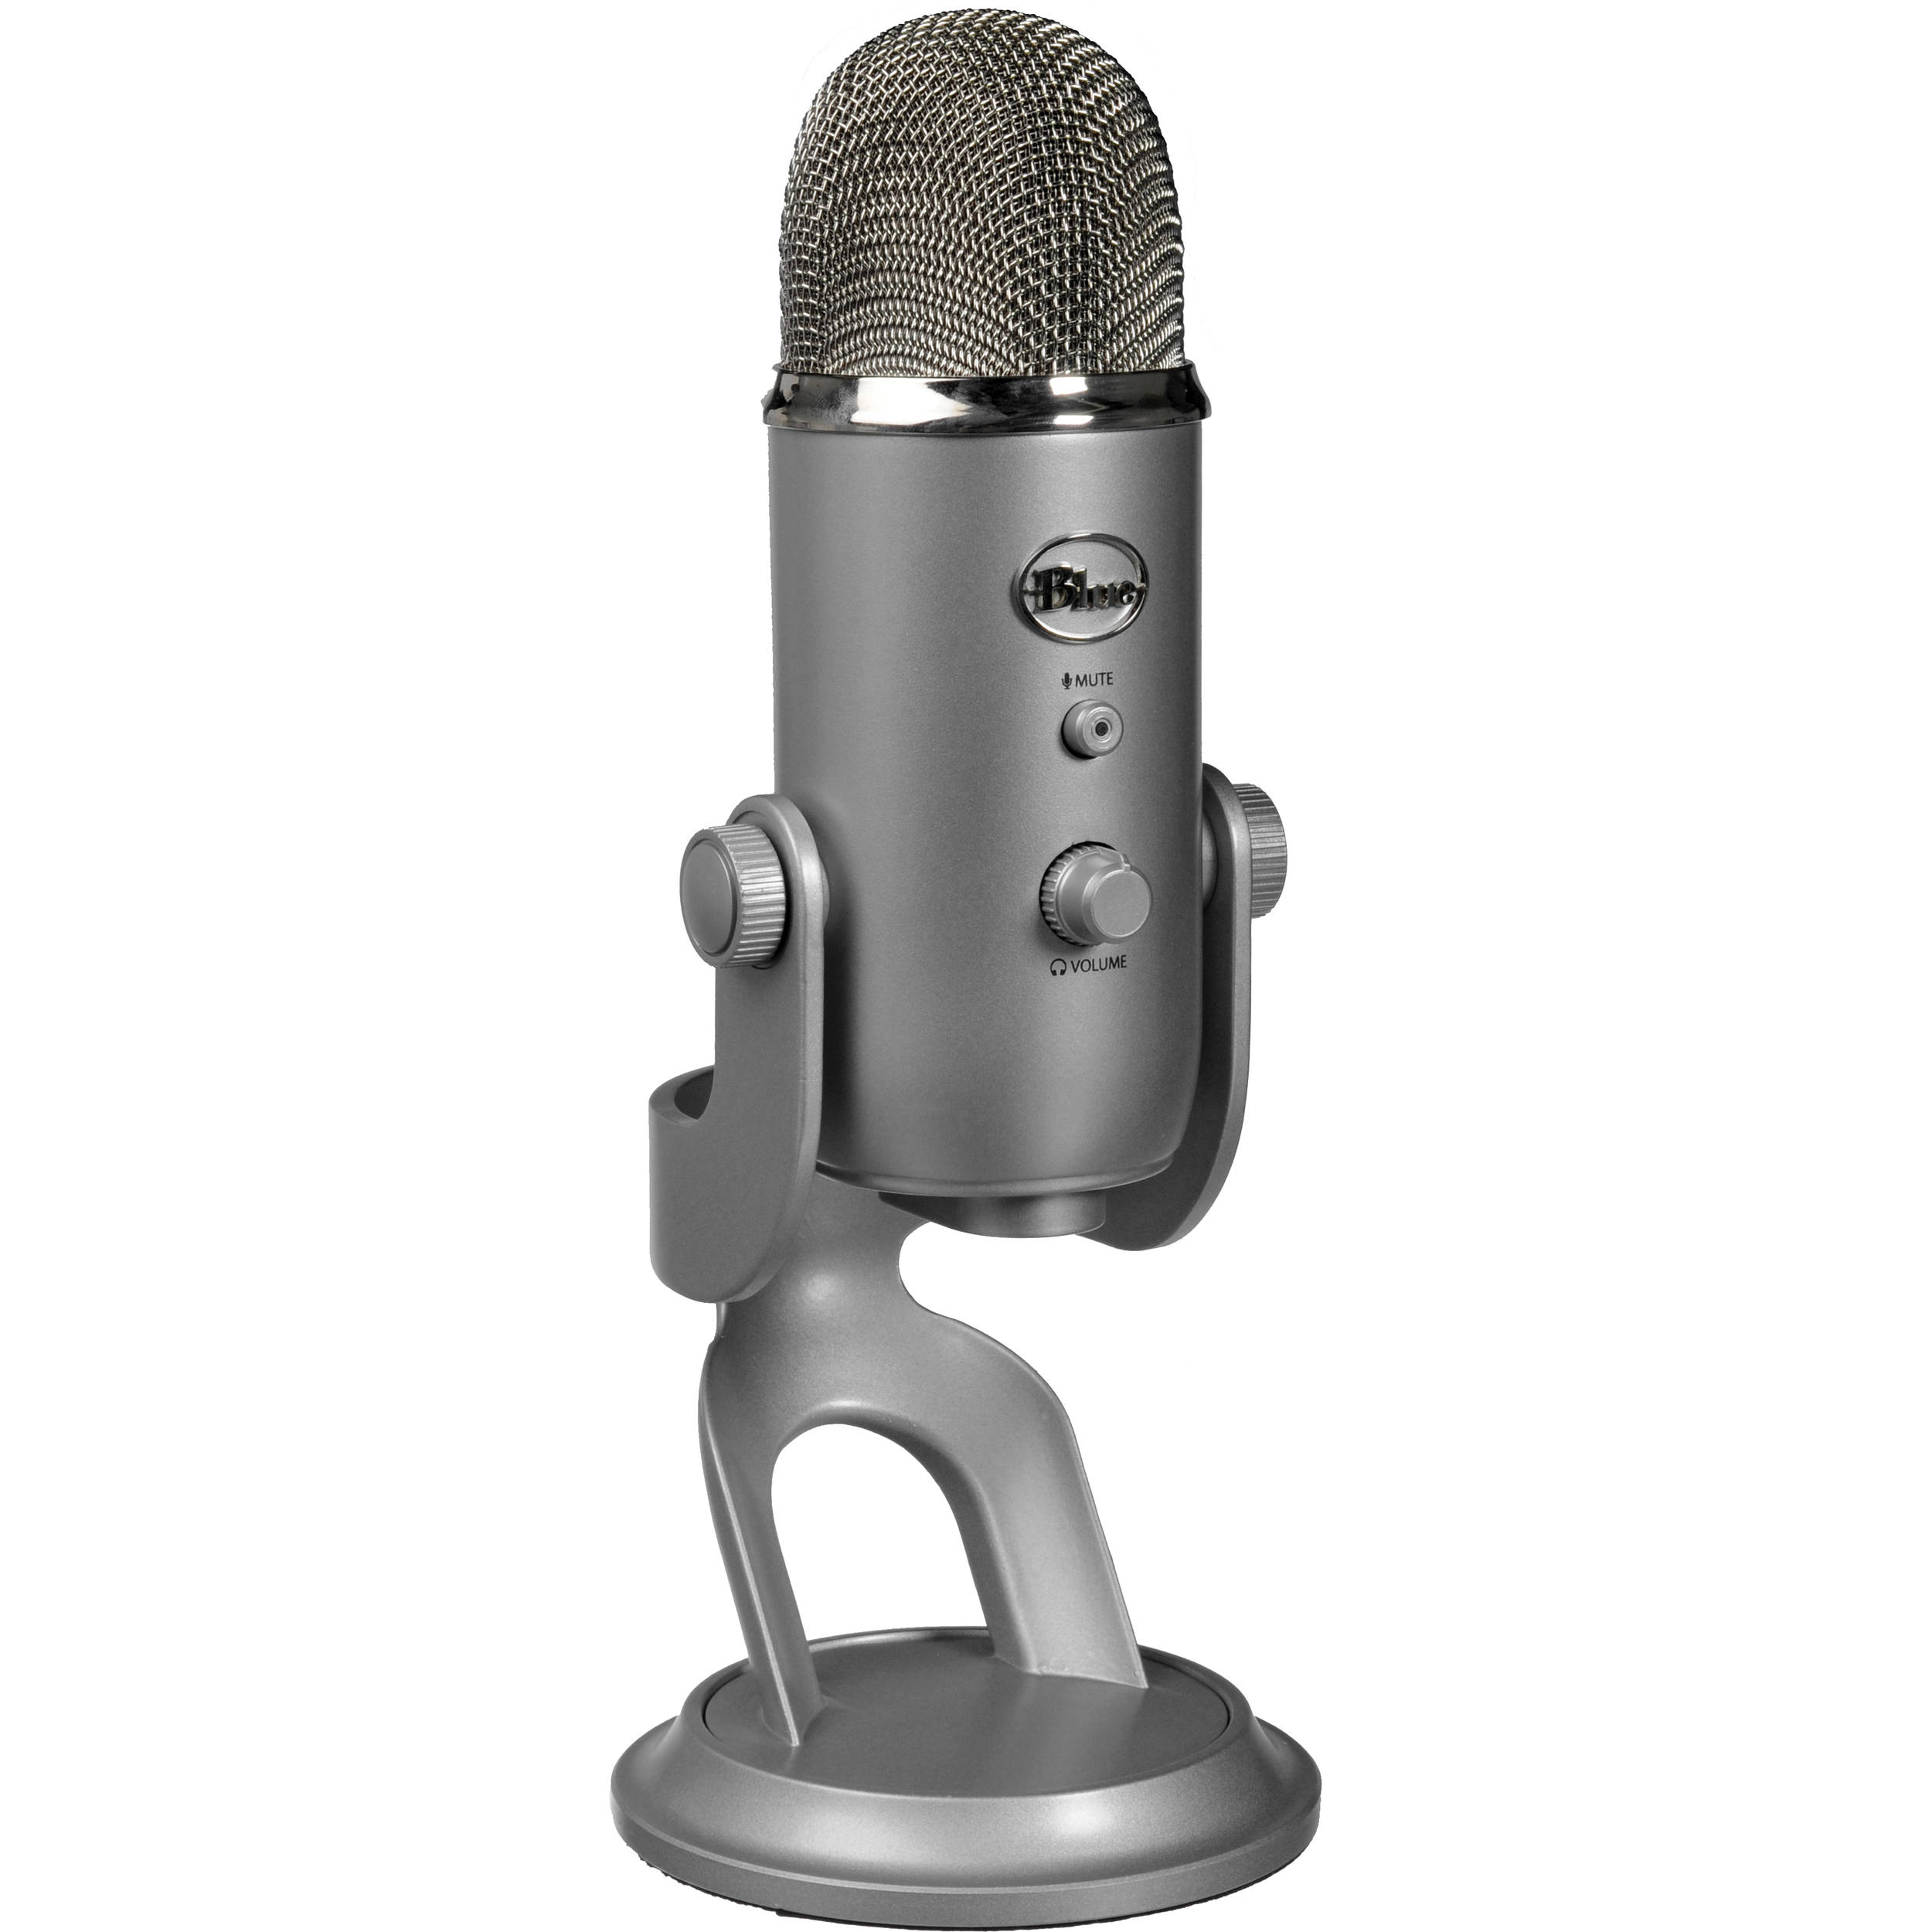 Audio-Technica AST2035 vs Blue Yeti